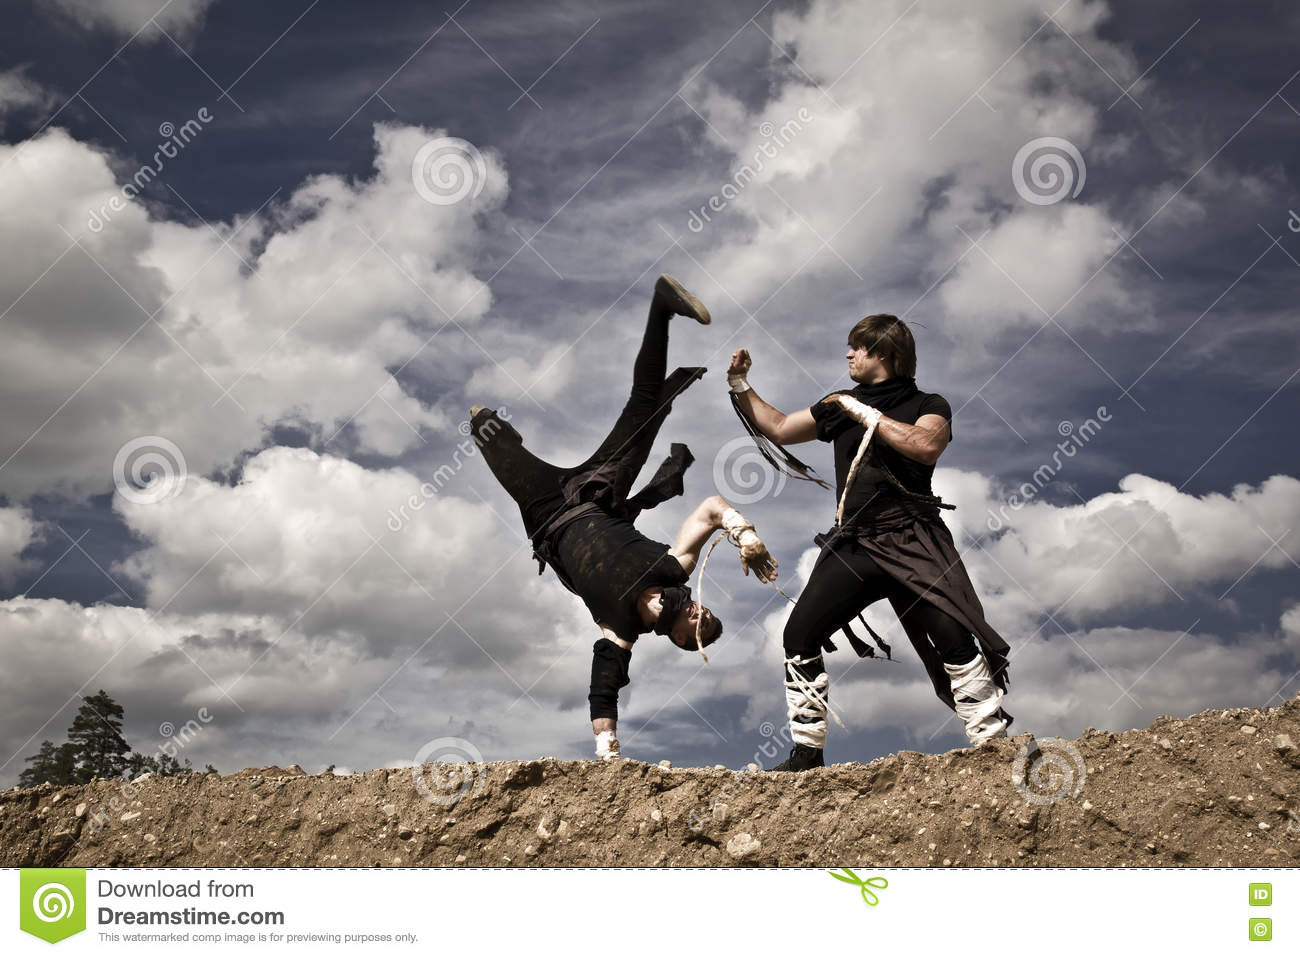 Two men are fighting